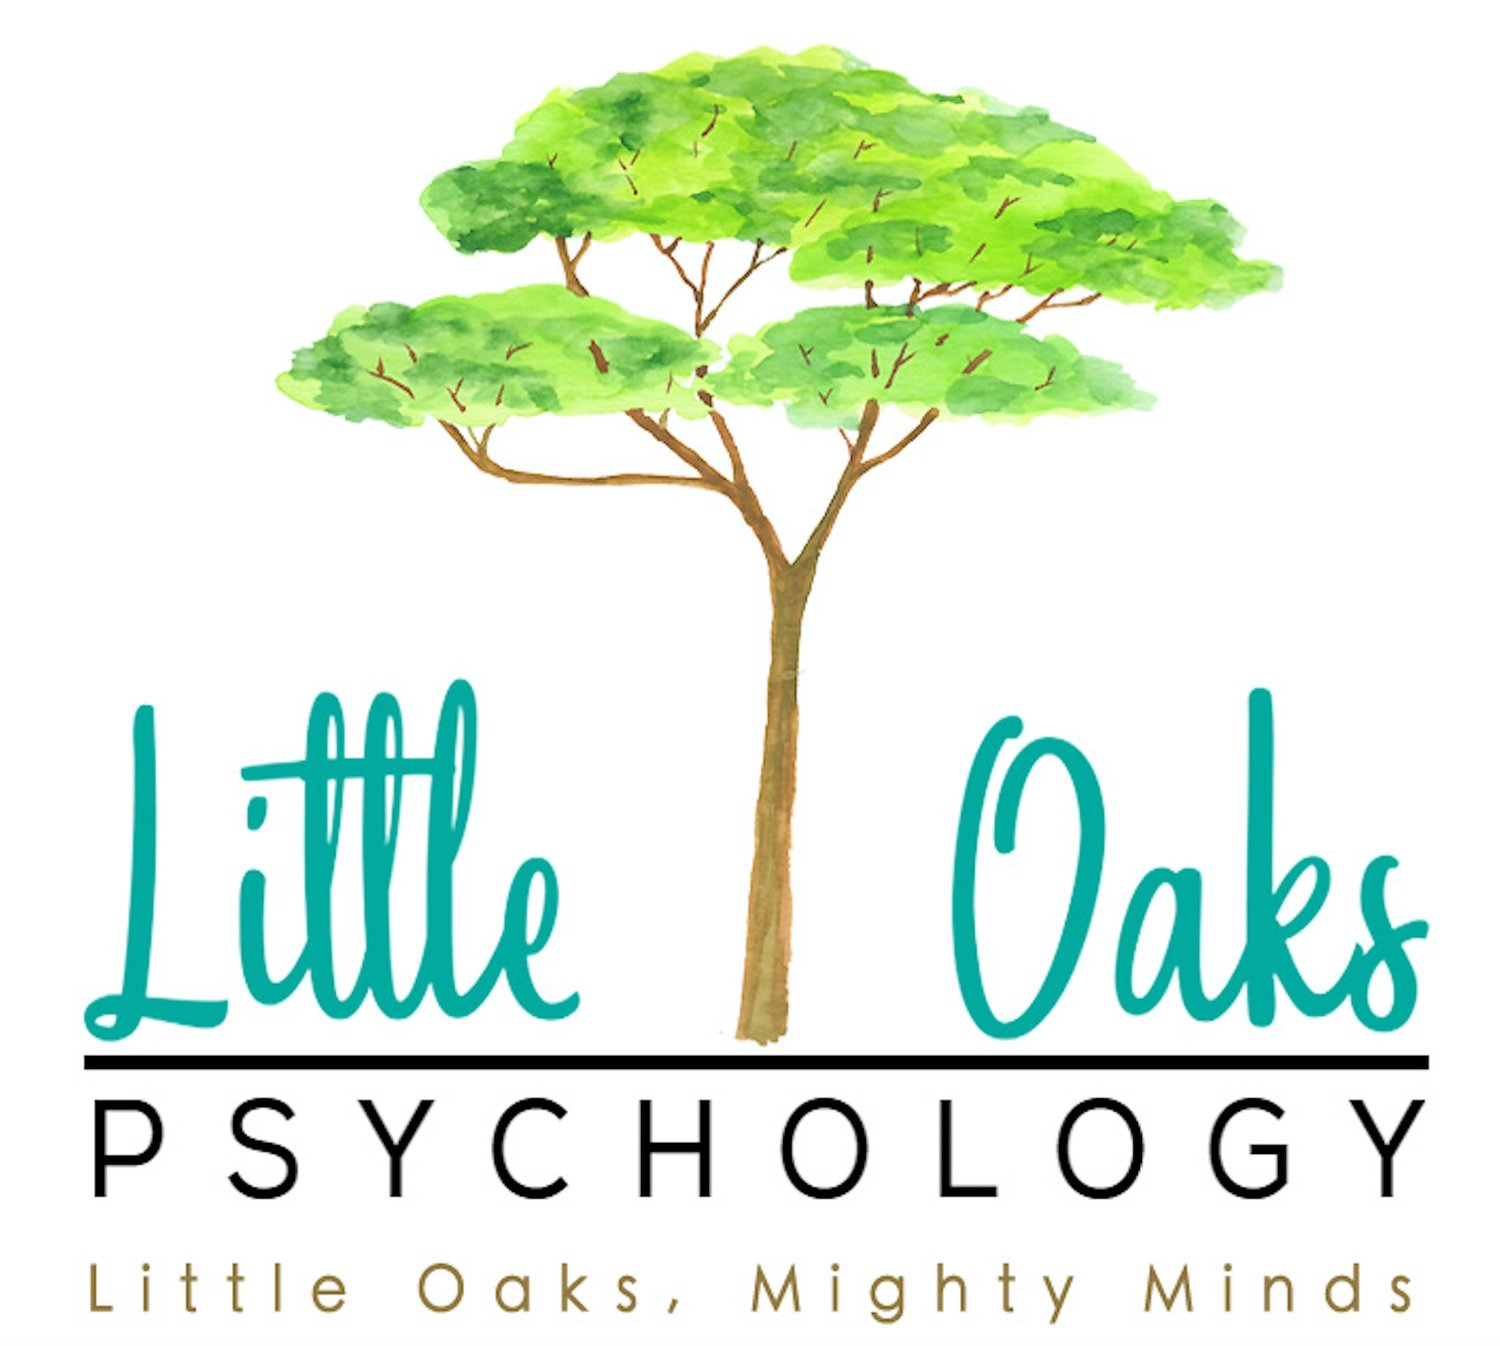 Little Oaks Psychology